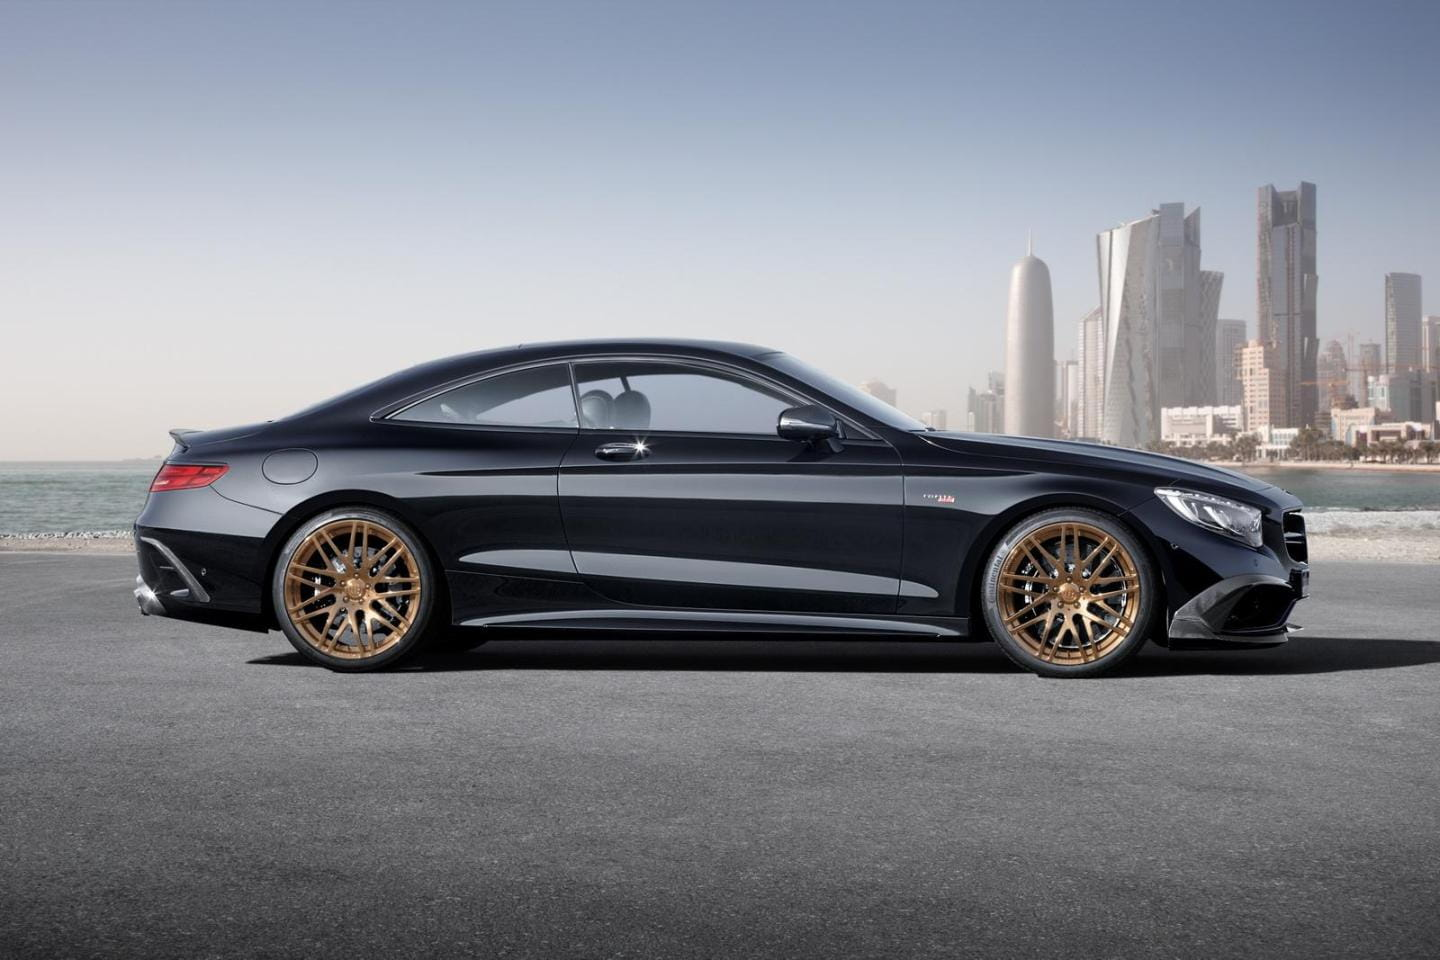 brabus_Mercedes_clase_S_coupe_DM_13